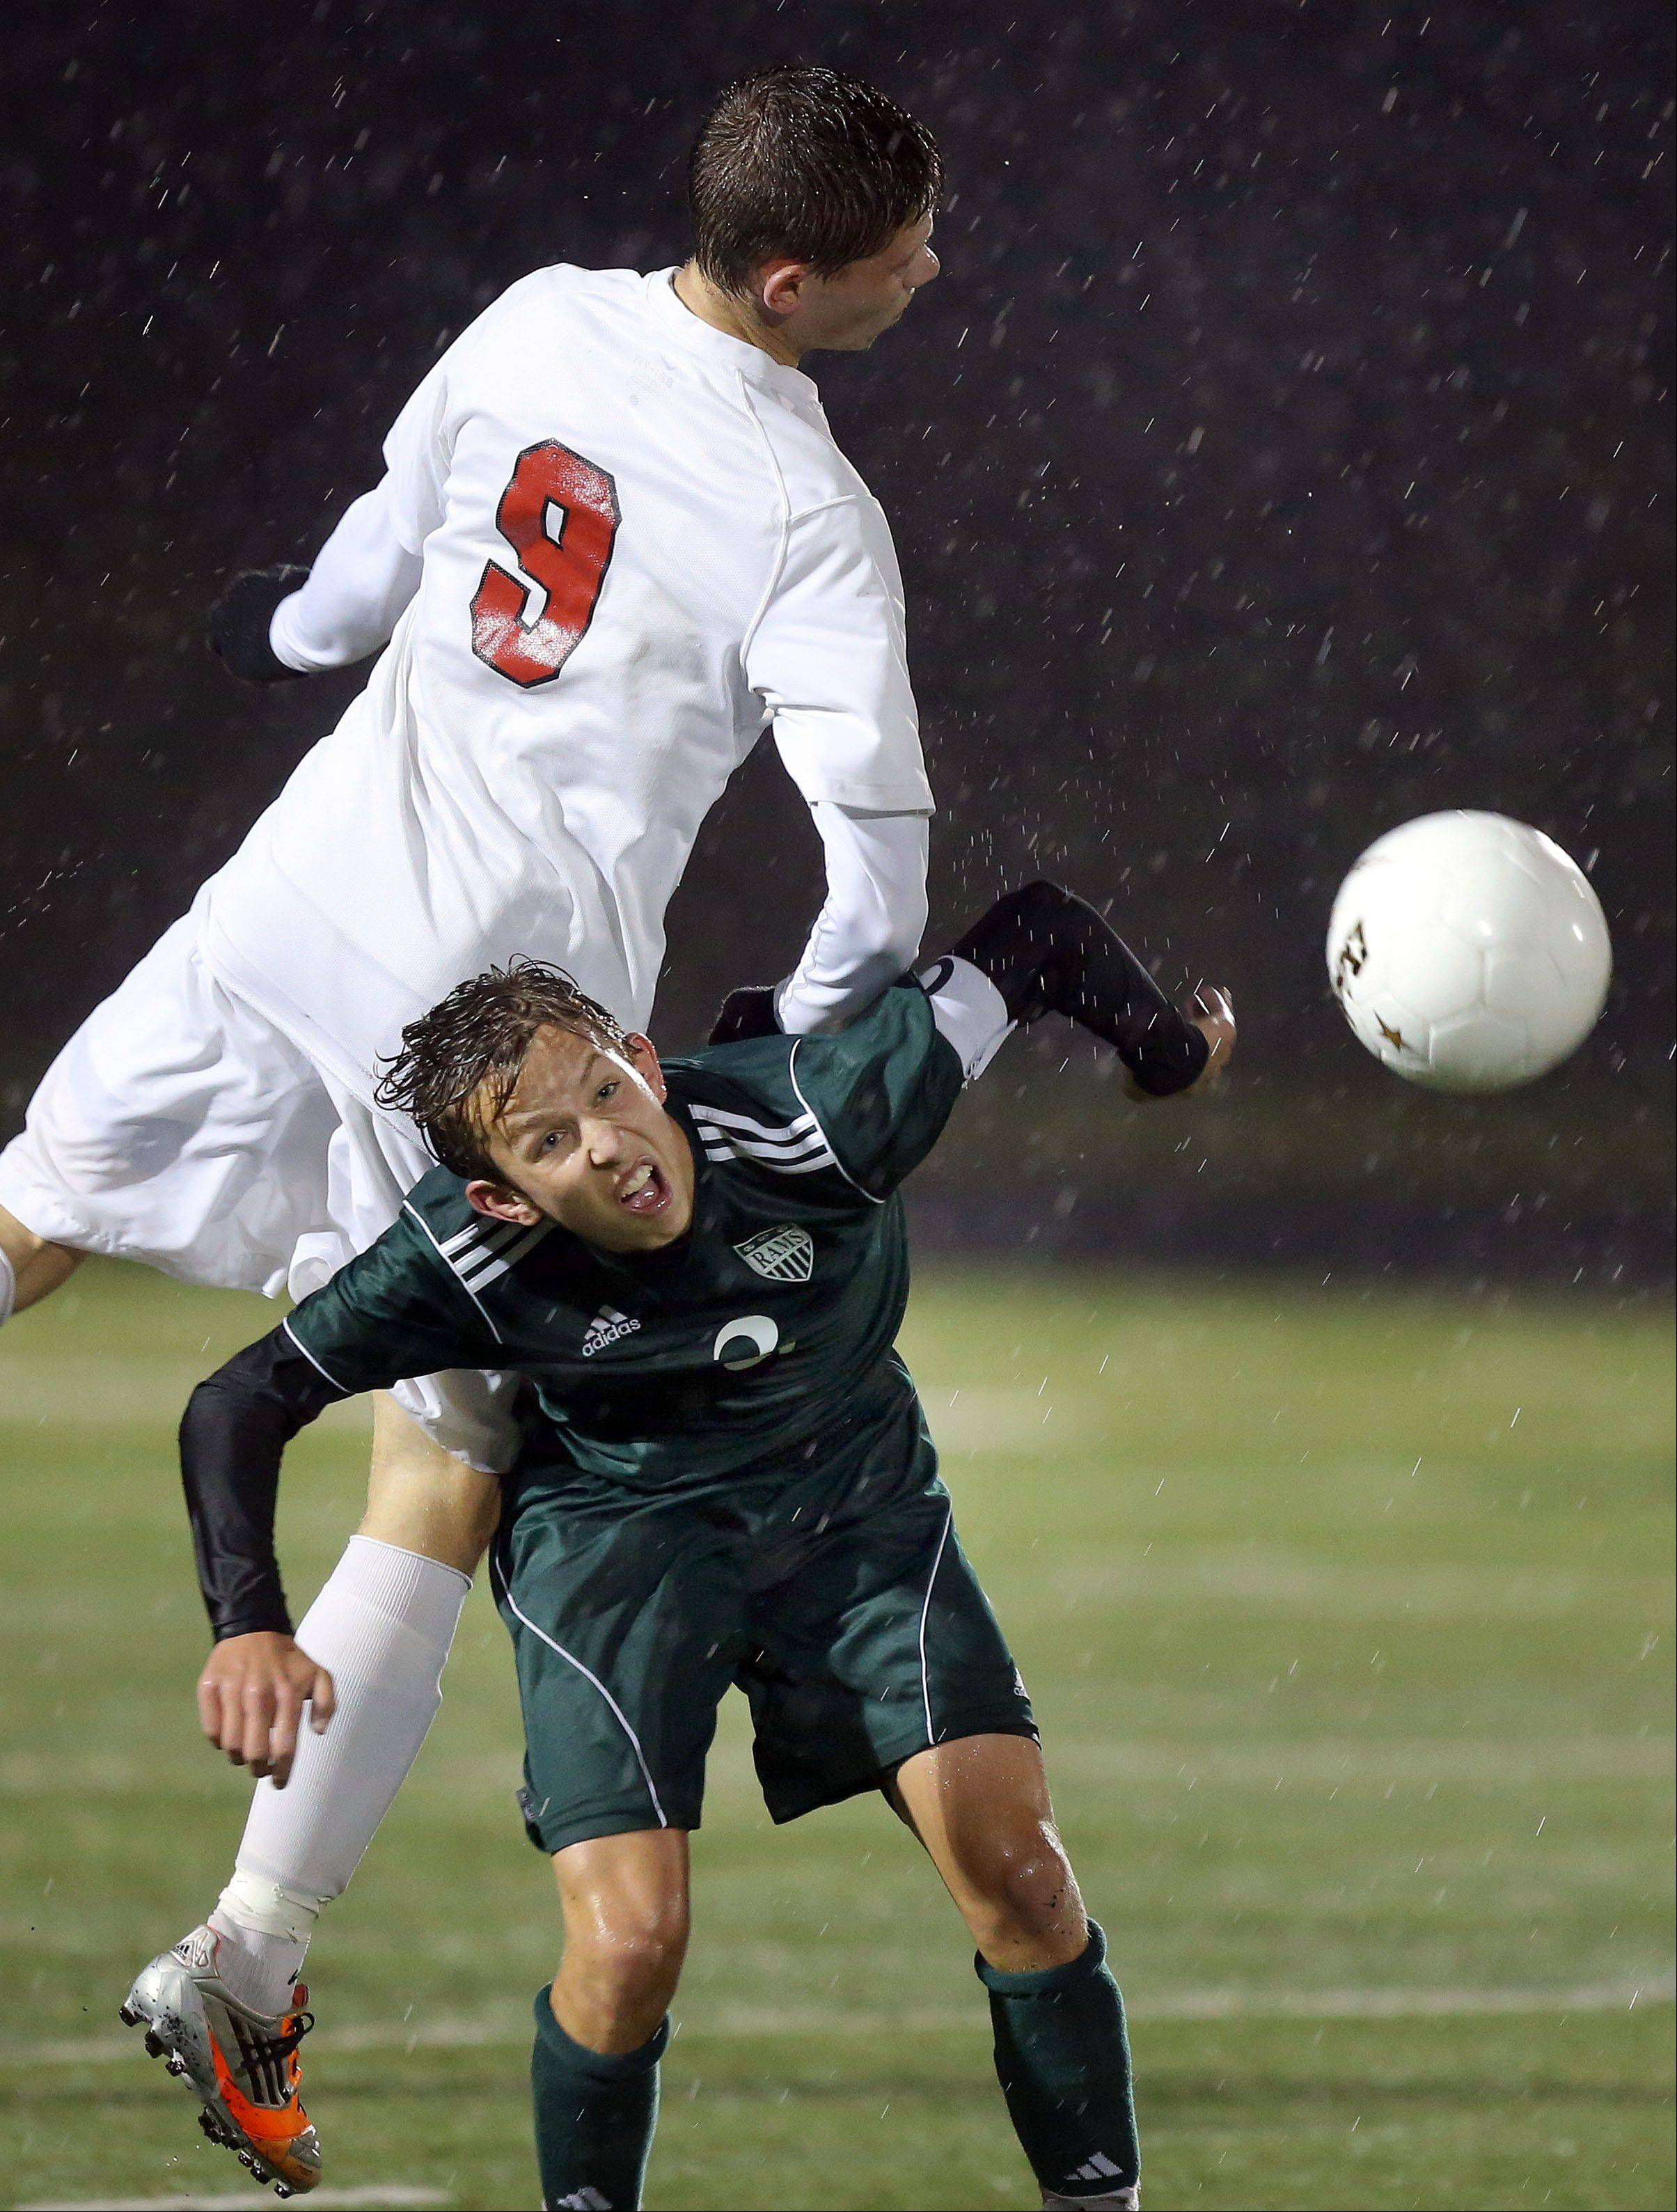 Antioch's Krystian Streit, top, and Grayslake Central's Isaac Longenecker go up for a header Wednesday.